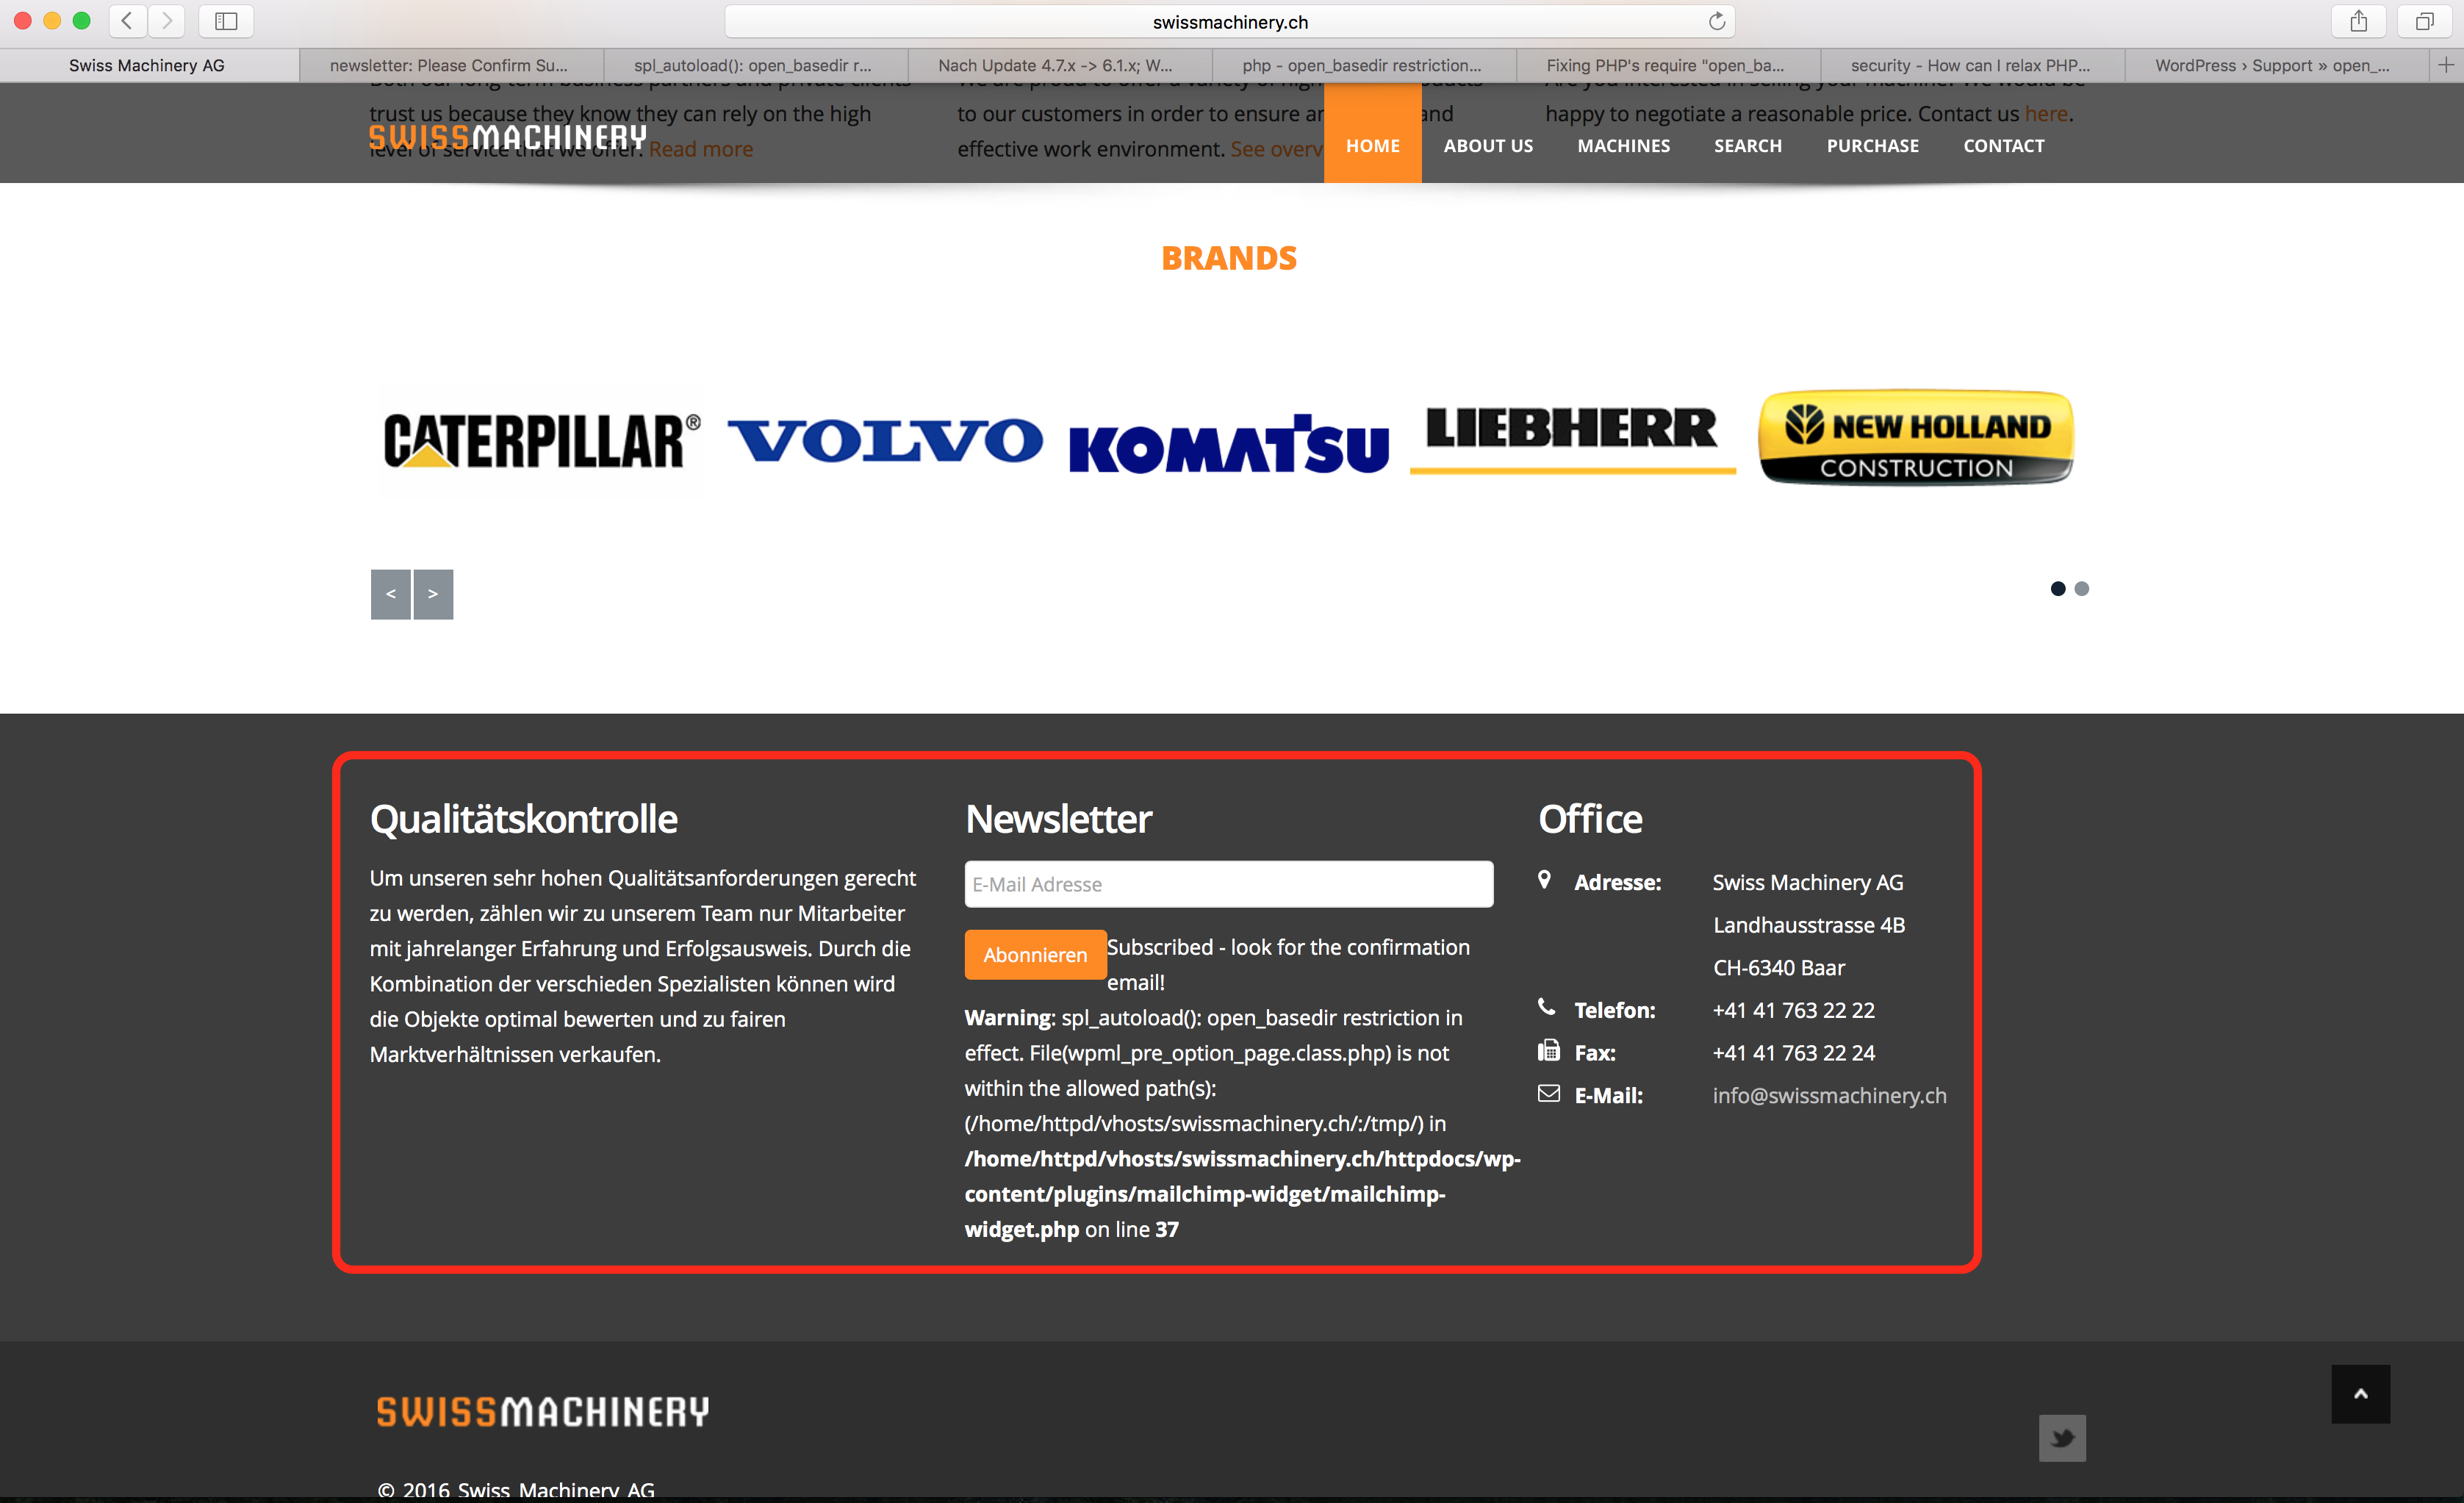 footer in wrong language +homepage links not translating